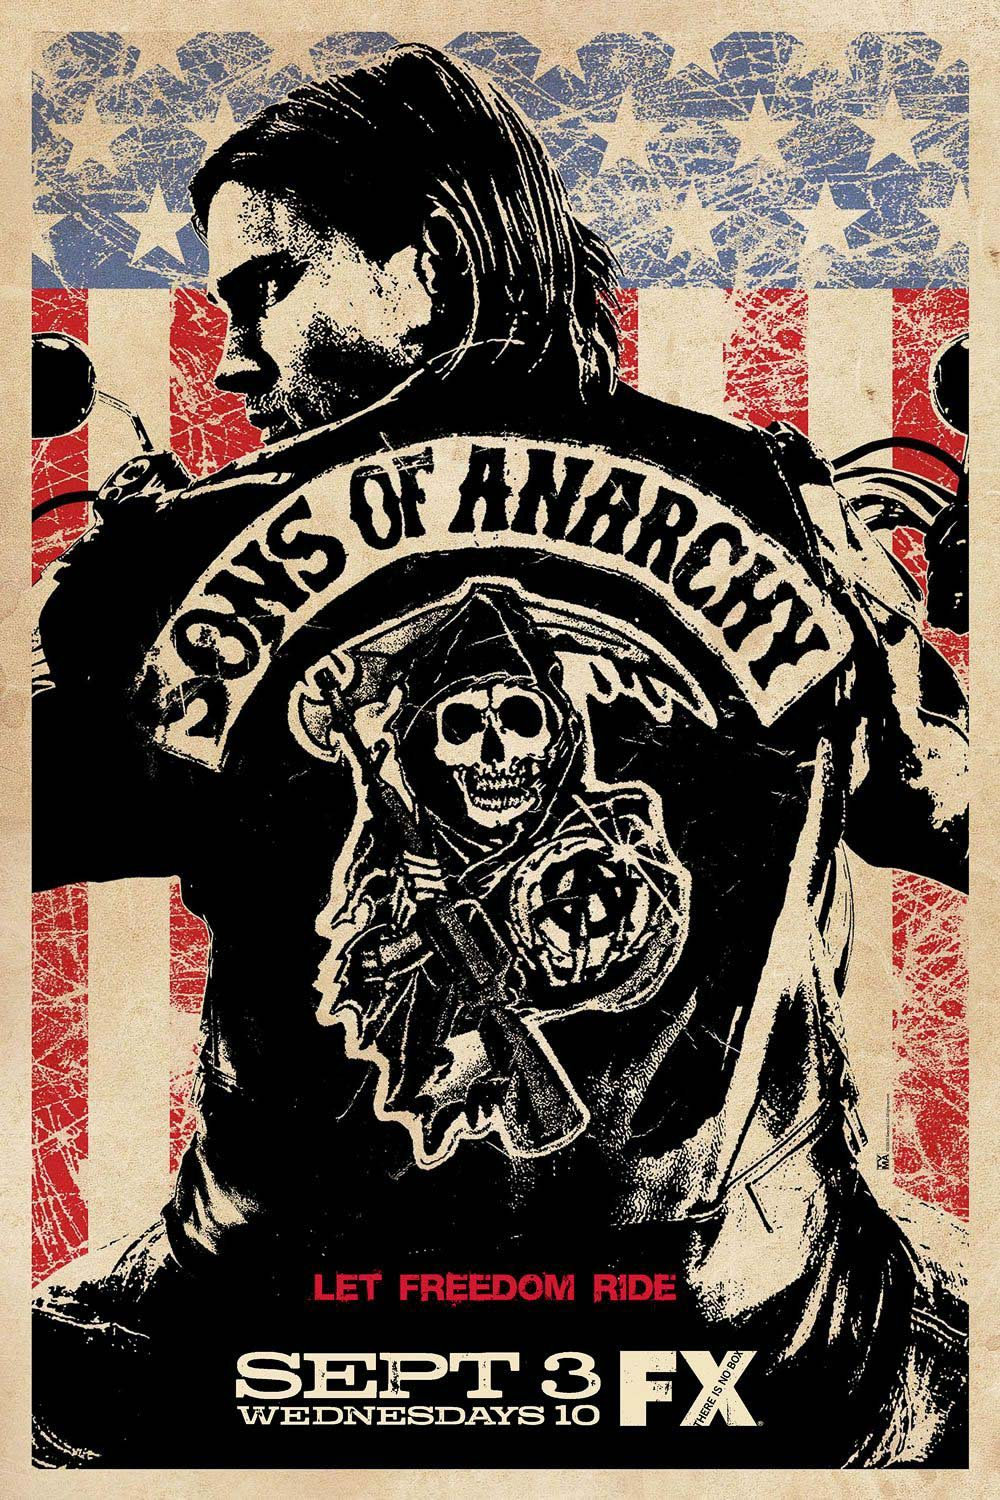 Sons Of Anarchy (VoicesFILM) [1000 x 1500] (2)